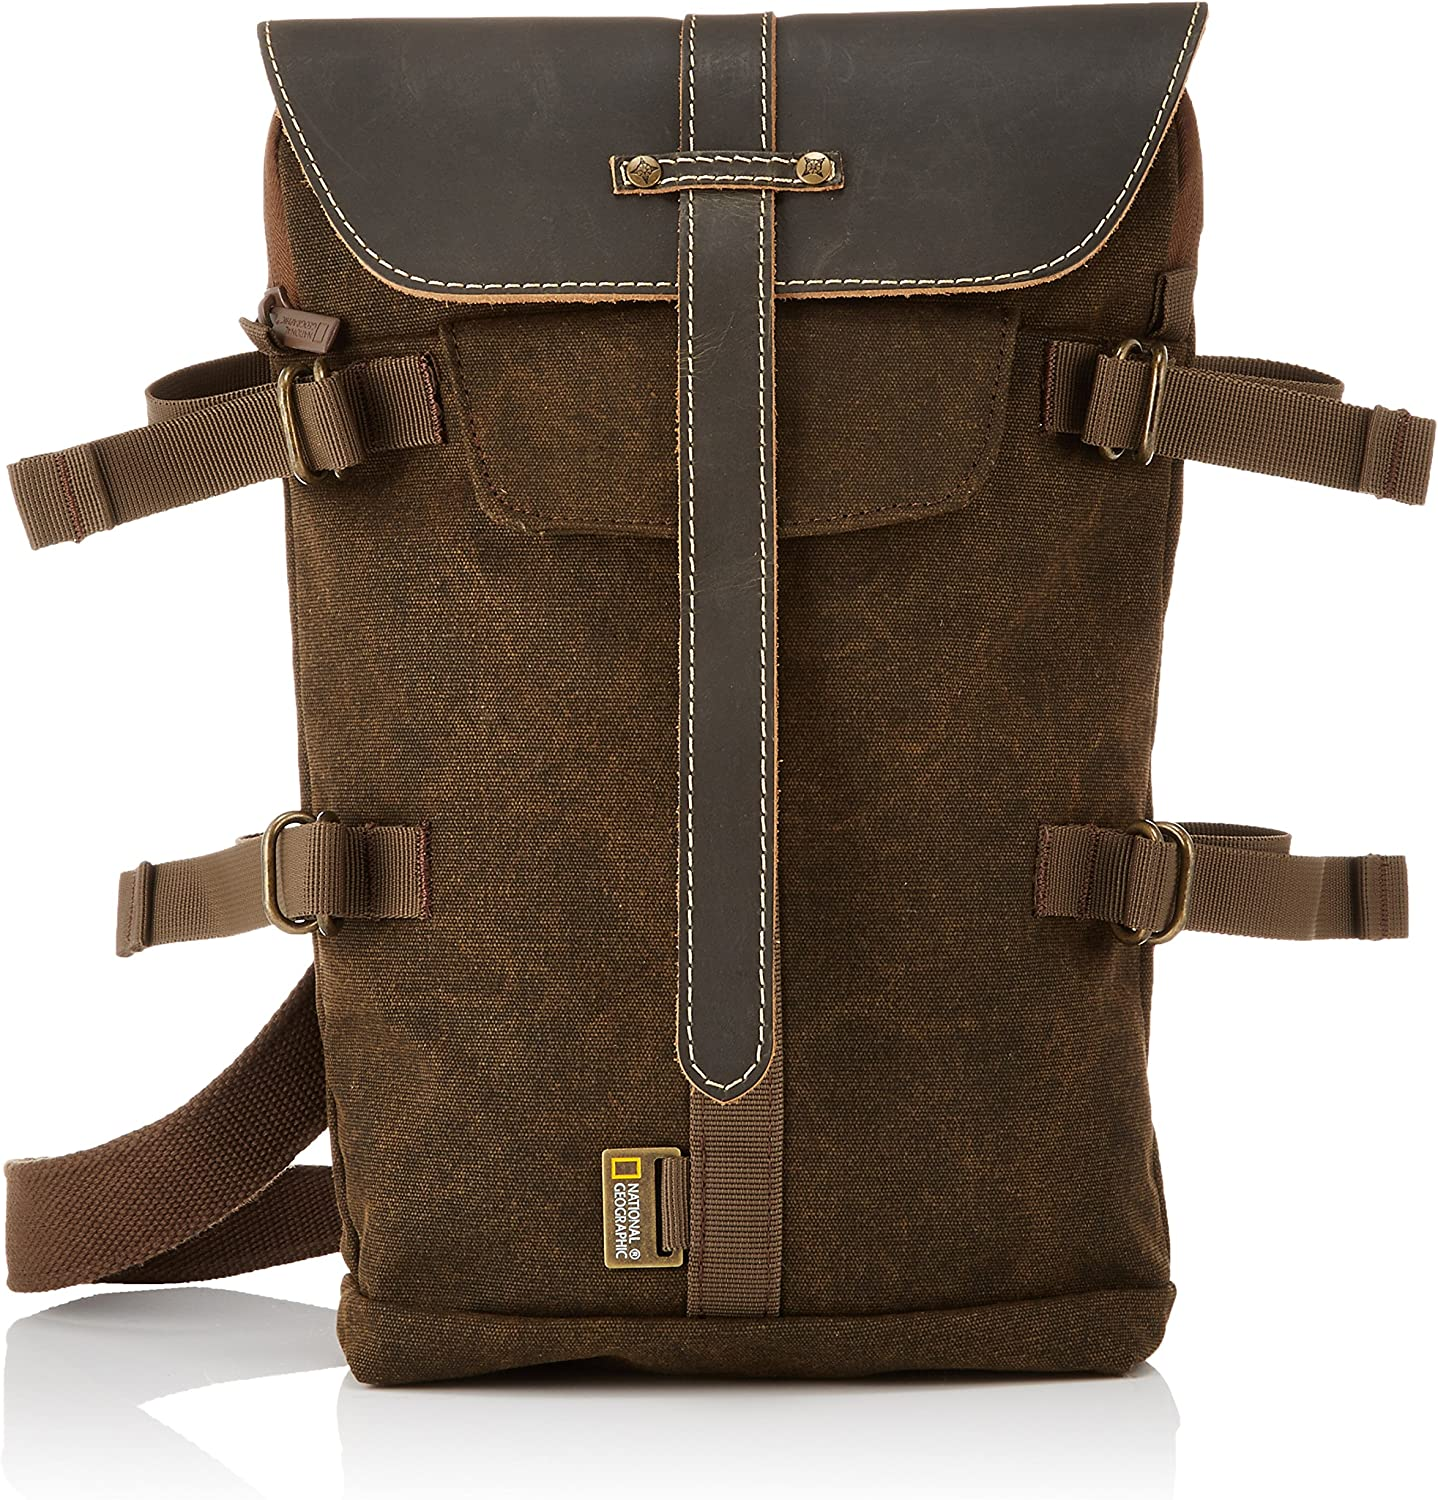 National Geographic Backpack and Sling Bag for Camera